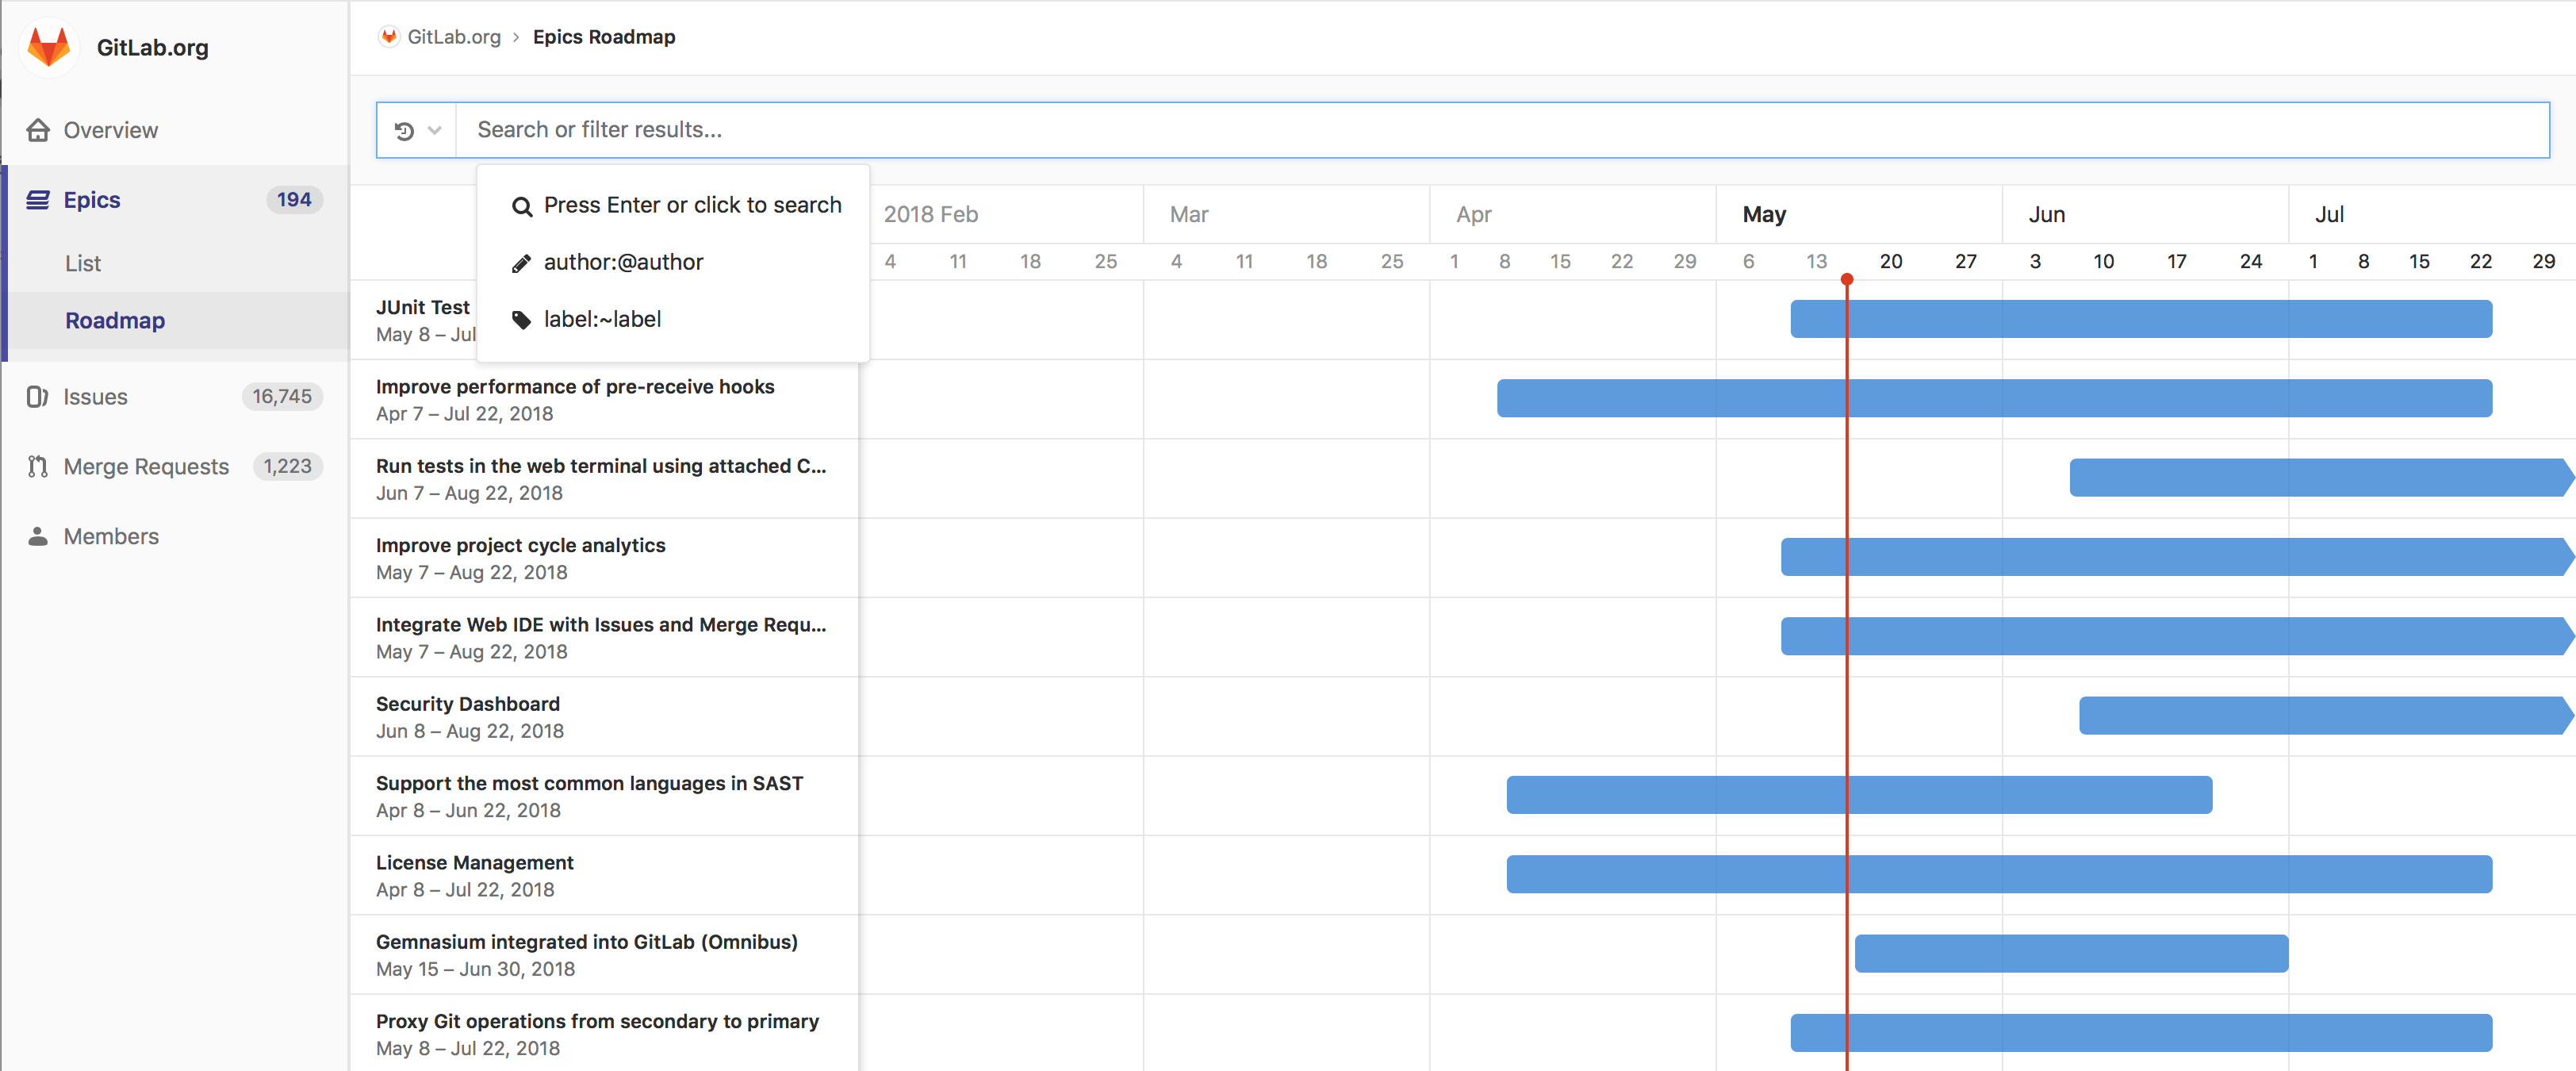 Epic roadmap search and filter bar